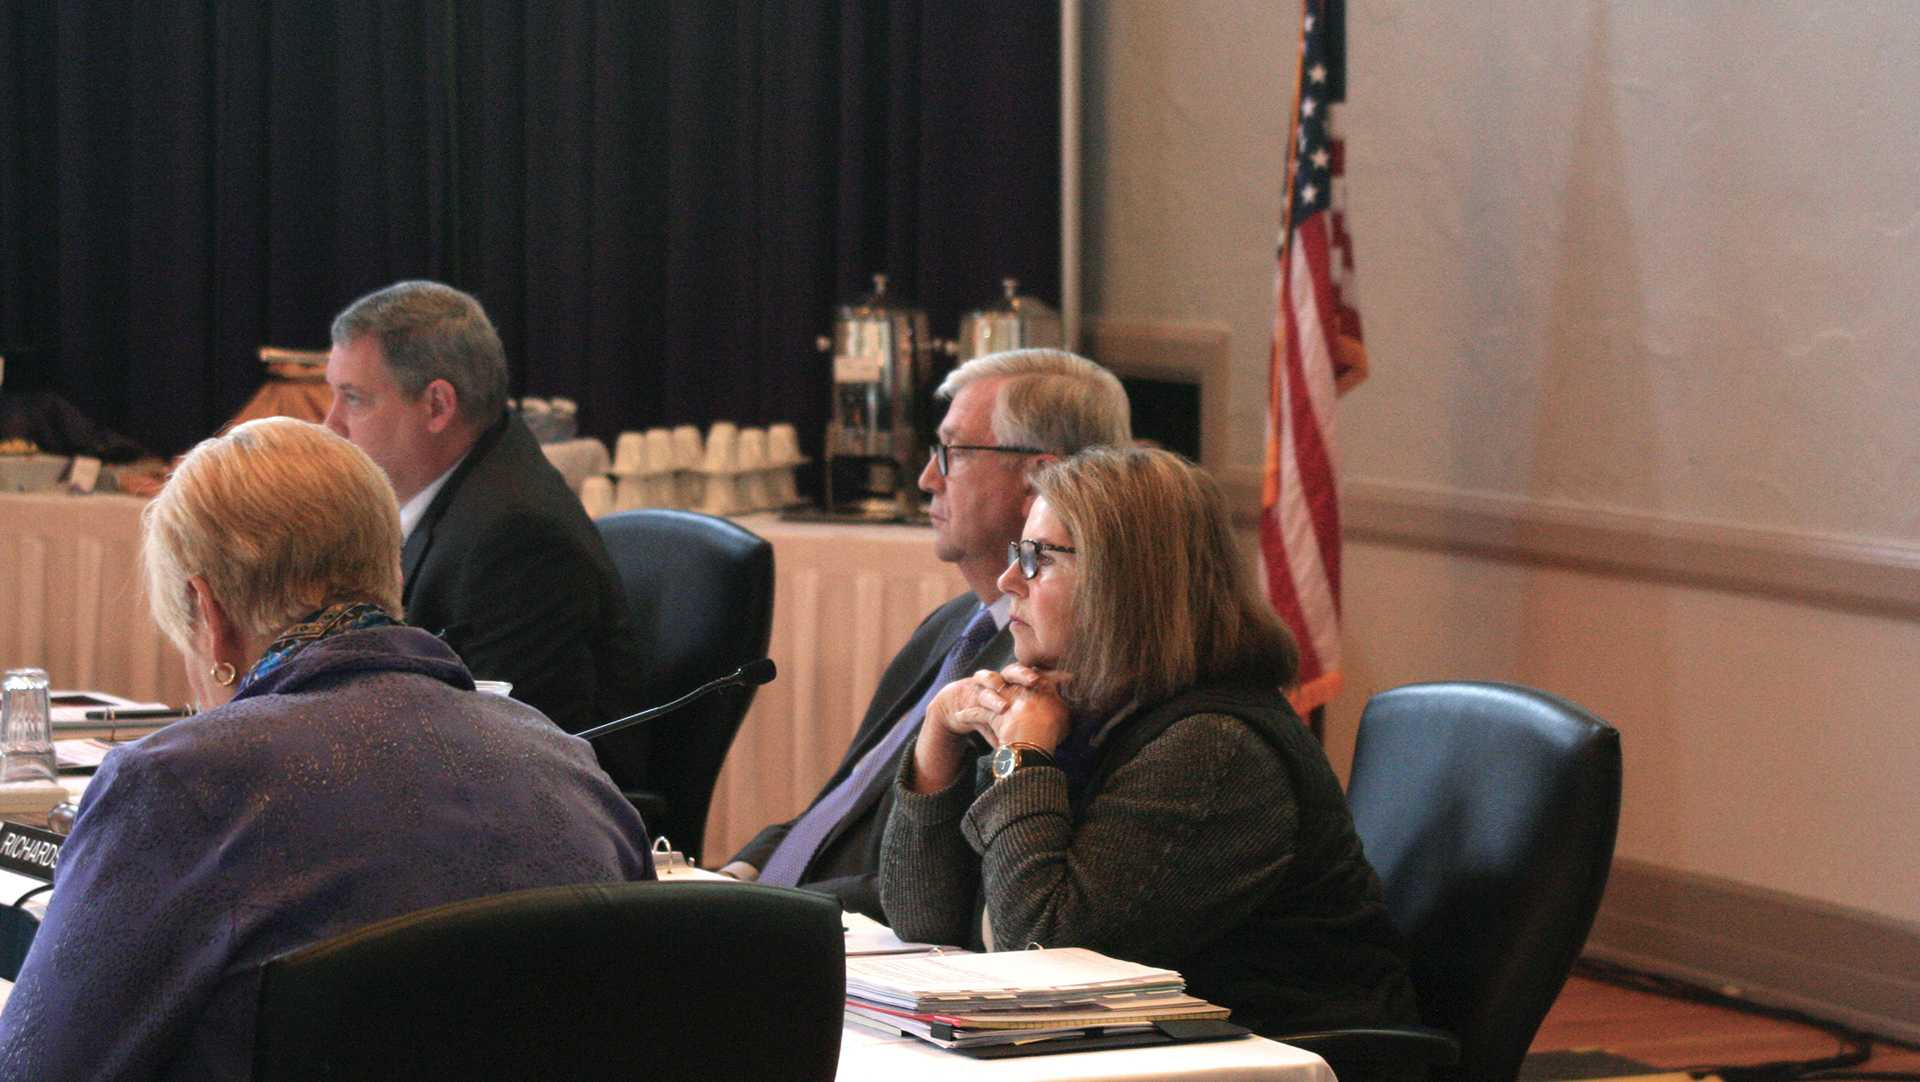 Regent President Mike Richards and Regent President Pro Tem Patricia Cownie listen to a presentation during the regents meeting at the University of Northern Iowa in Cedar Falls on Thursday, Oct. 19, 2017.  The regents heard reports on institutional strategic plans and appointed a new executive director. (Emily Wangen/The Daily Iowan)